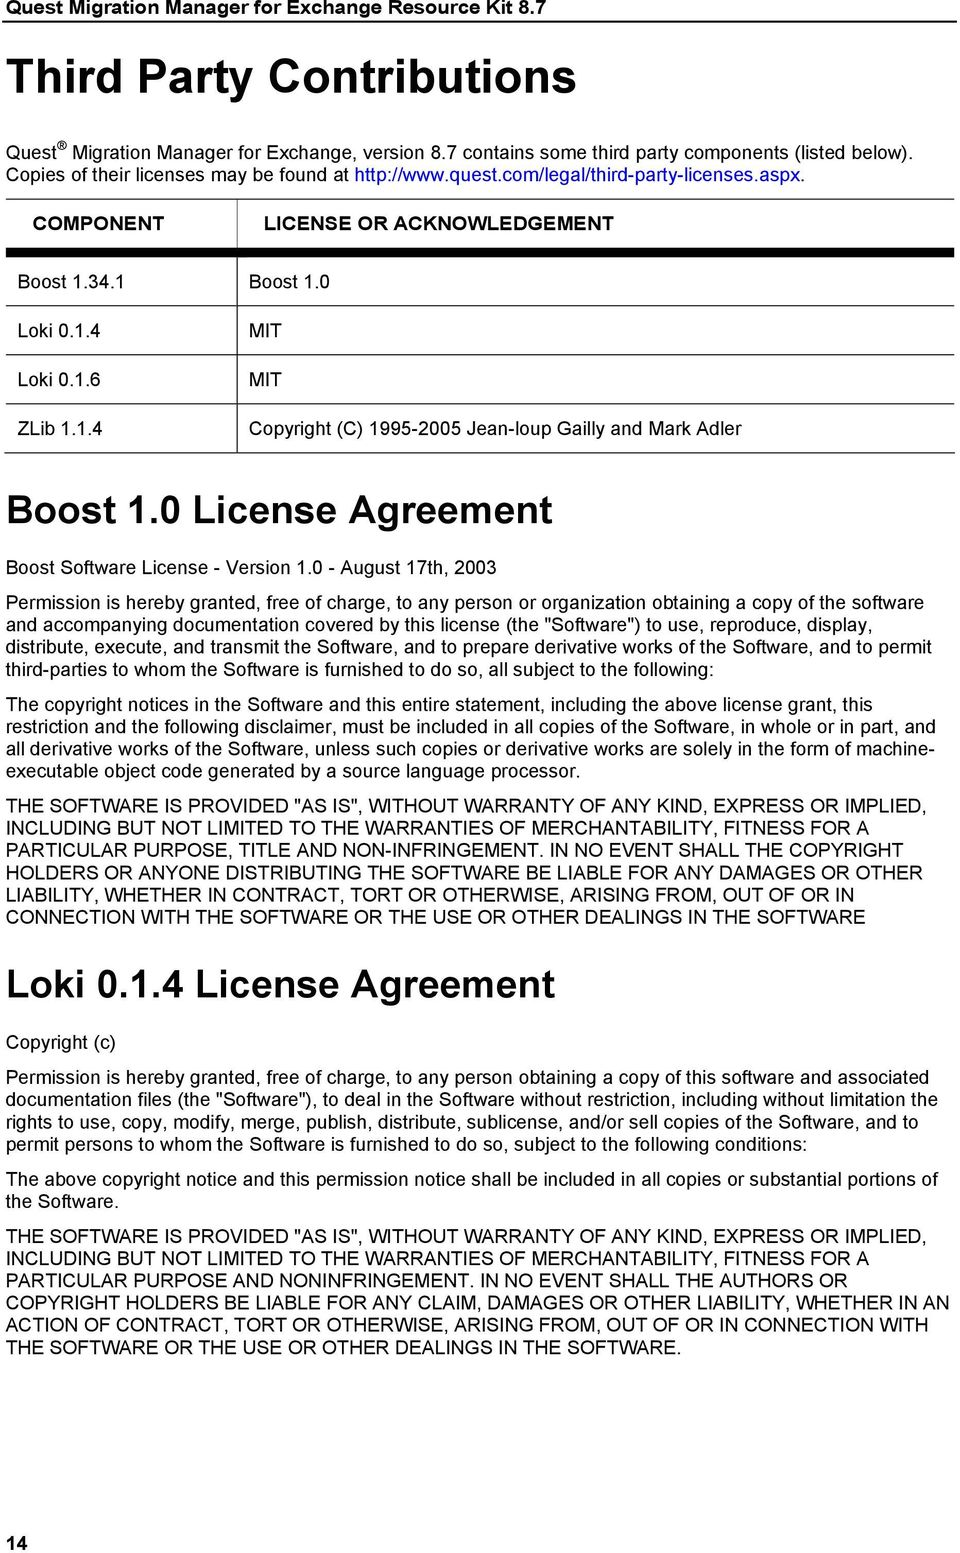 34.1 Boost 1.0 Loki 0.1.4 Loki 0.1.6 ZLib 1.1.4 MIT MIT Copyright (C) 1995-2005 Jean-loup Gailly and Mark Adler Boost 1.0 License Agreement Boost Software License - Version 1.